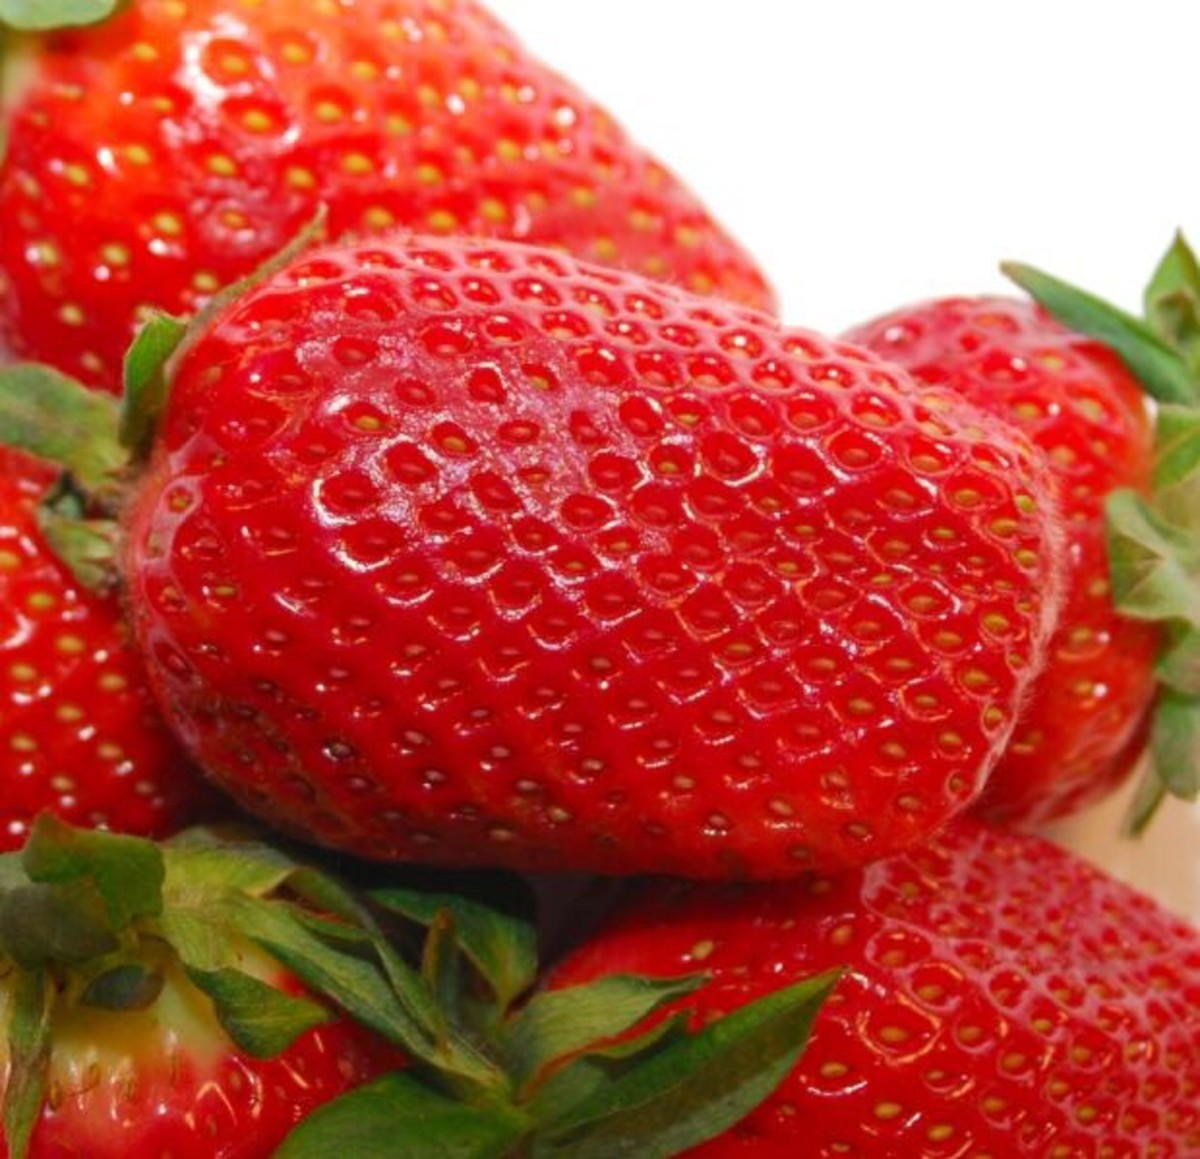 Strawberries also contain soluble fiber.